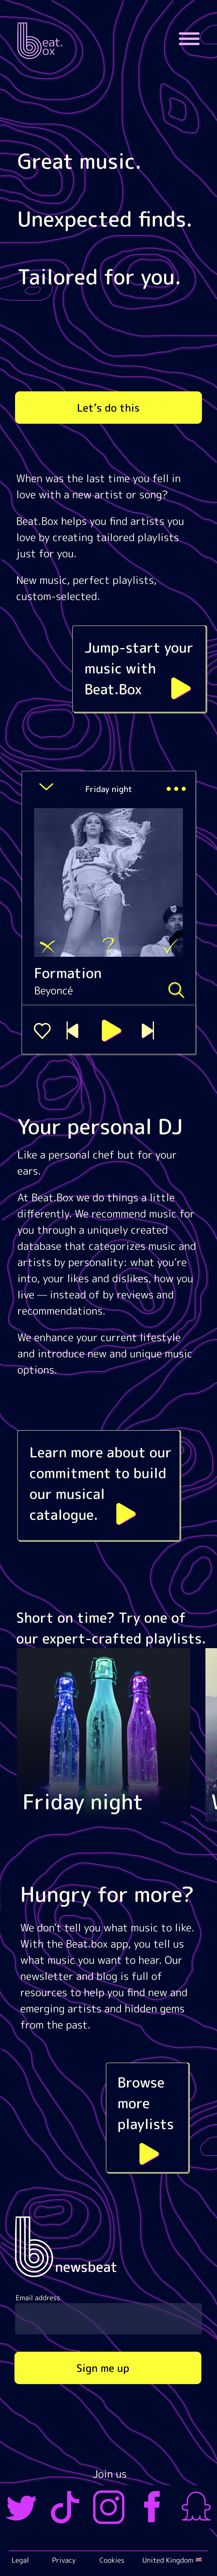 Mobile landing page design for a music app